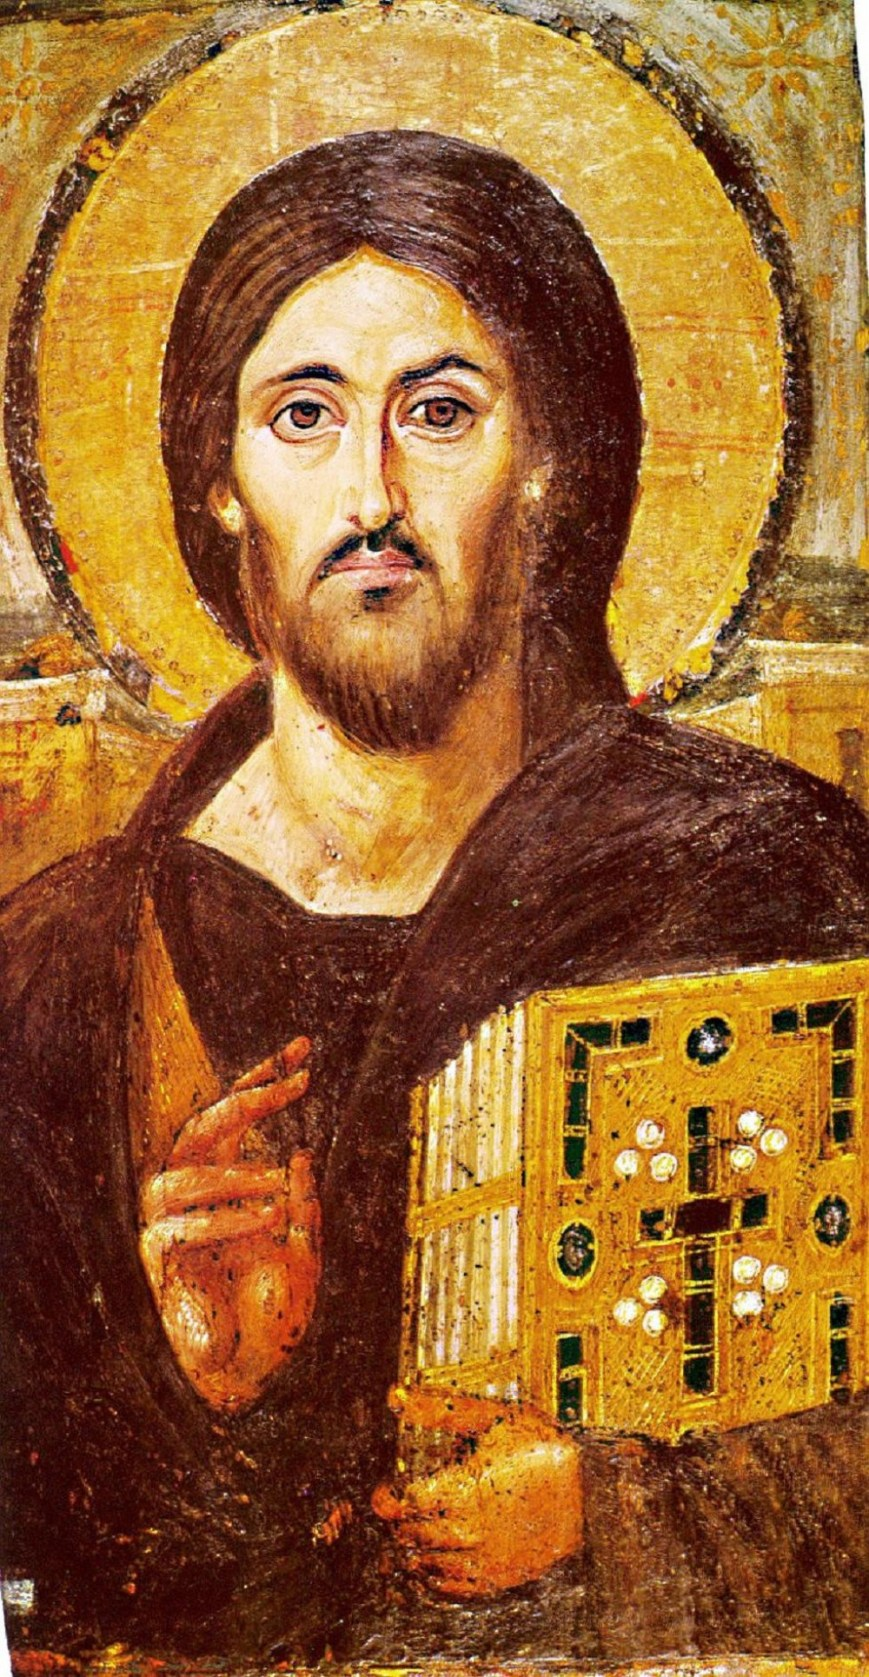 unknown-artist-christ-pantocrator-st-catherine-monastery-mount-sinai-egypt-6th-century-e1277330981153